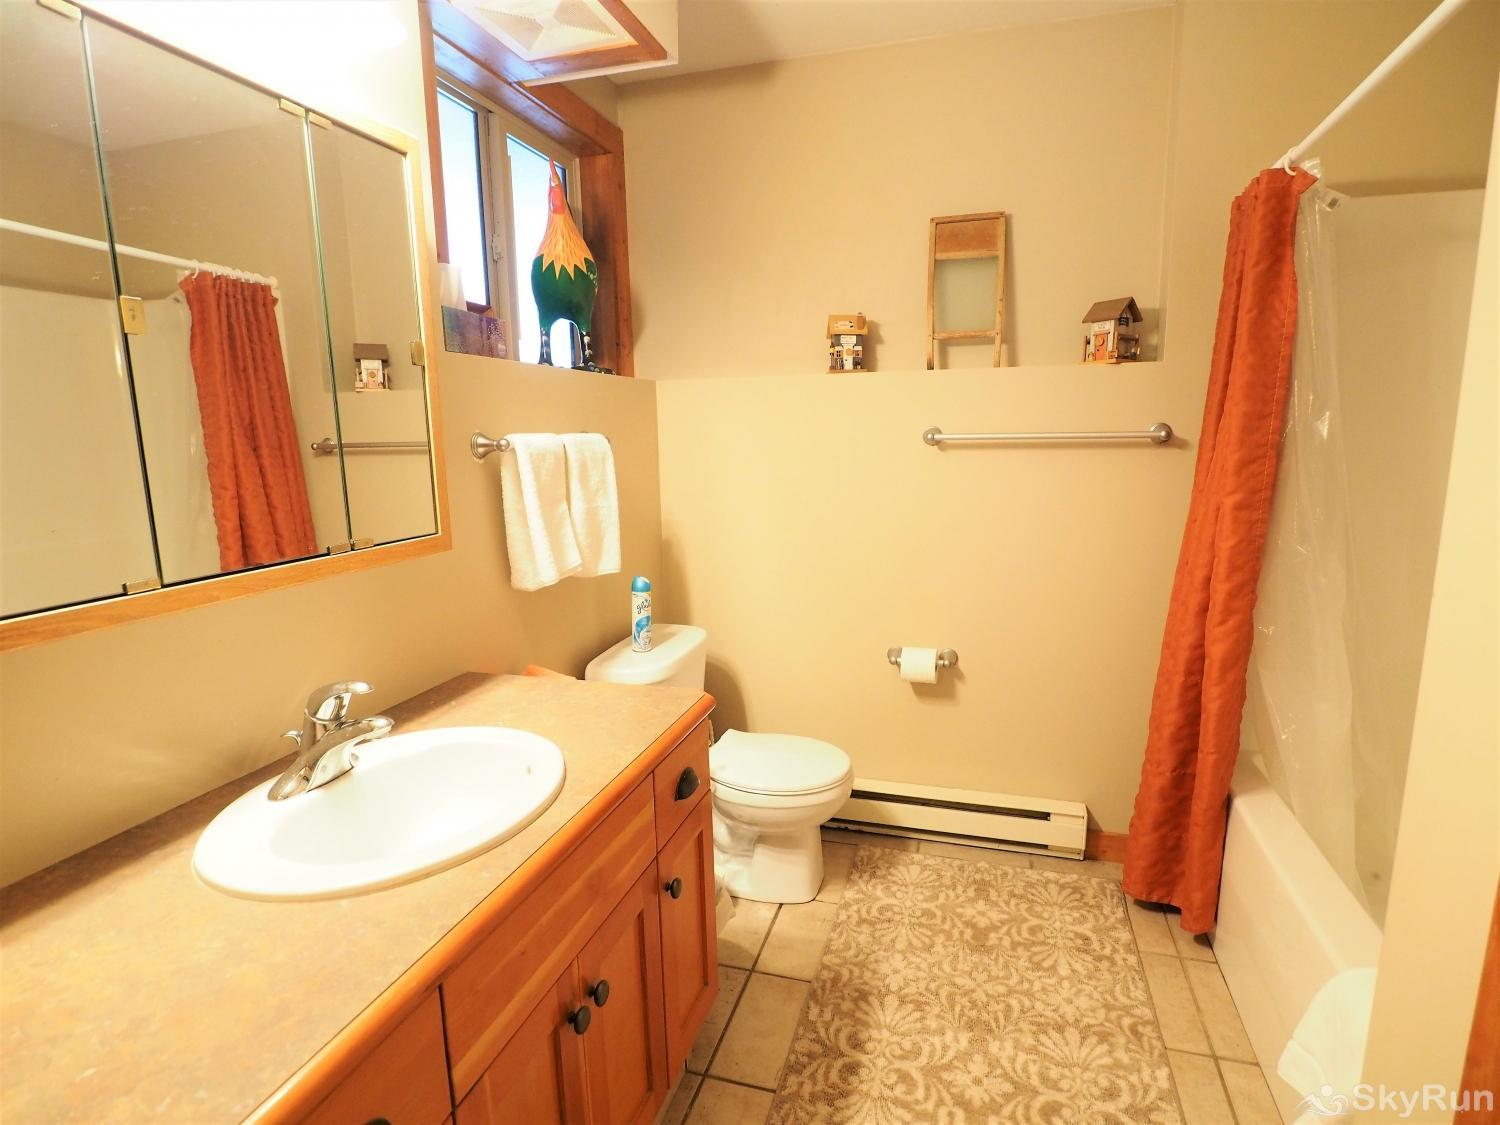 Apex Roost Guest Suite The bathroom is a great space to get ready for the day or night with a large mirror and plenty of counter space